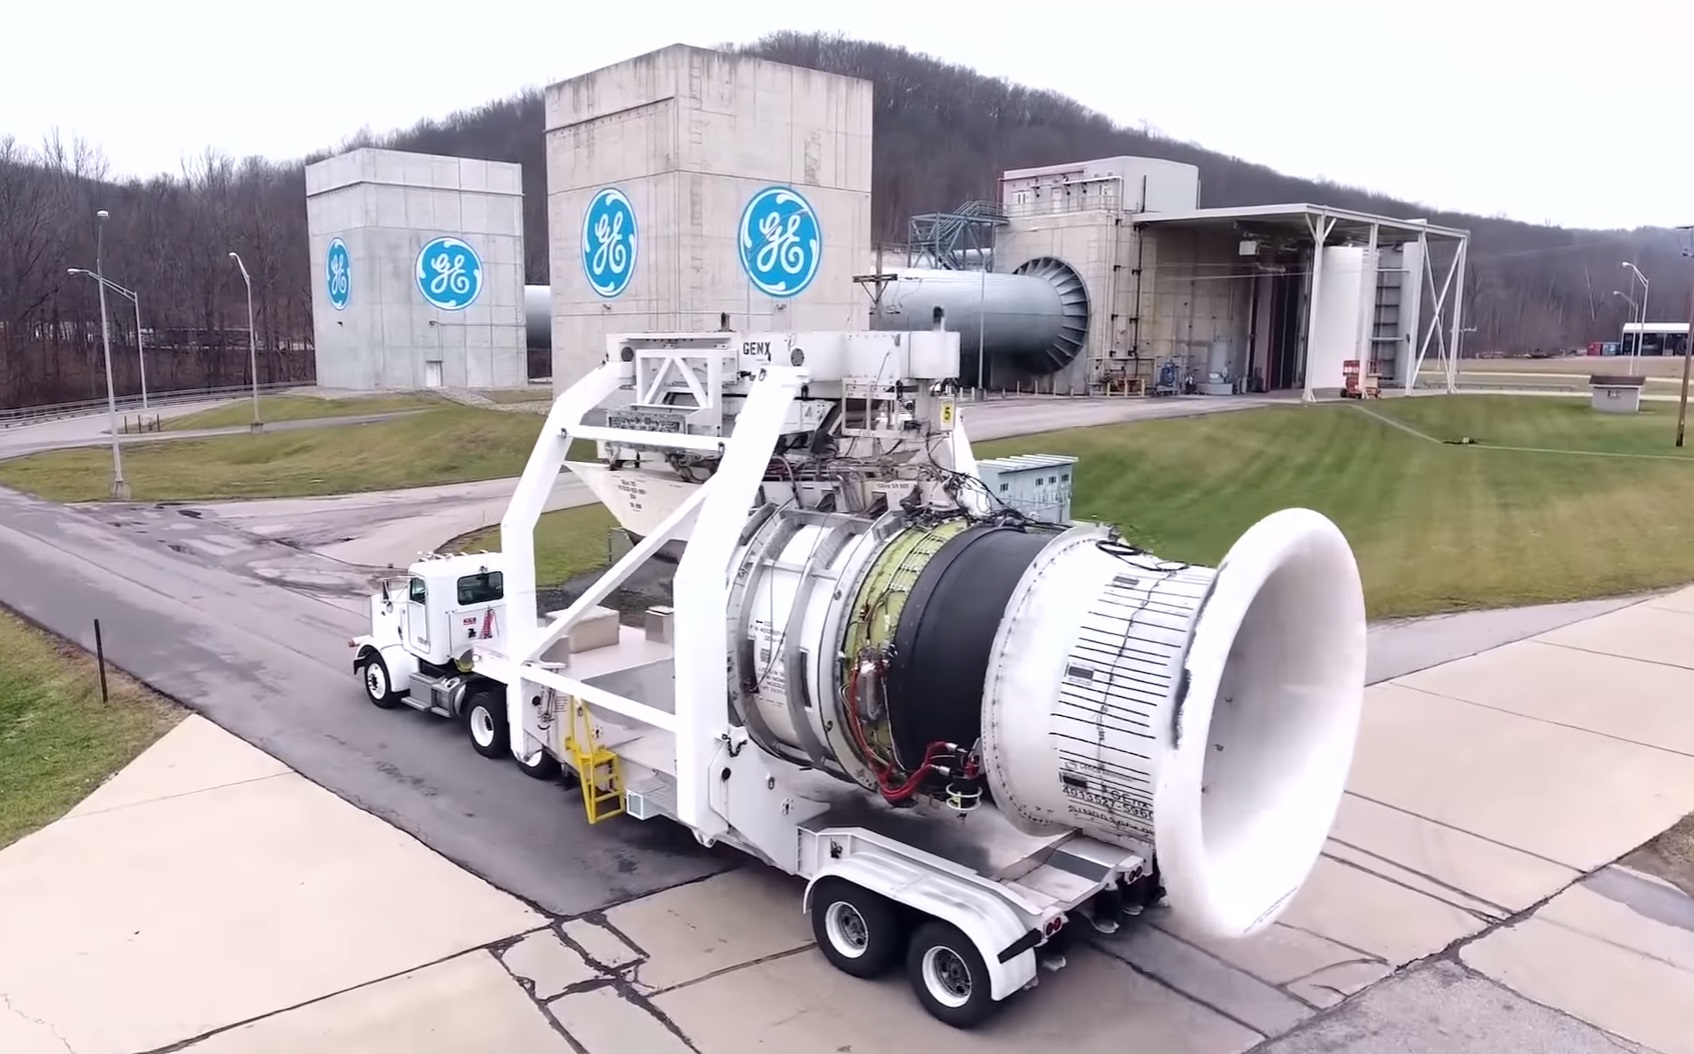 The GE Orb and More | SafeSmart Aviation Gets Up Close